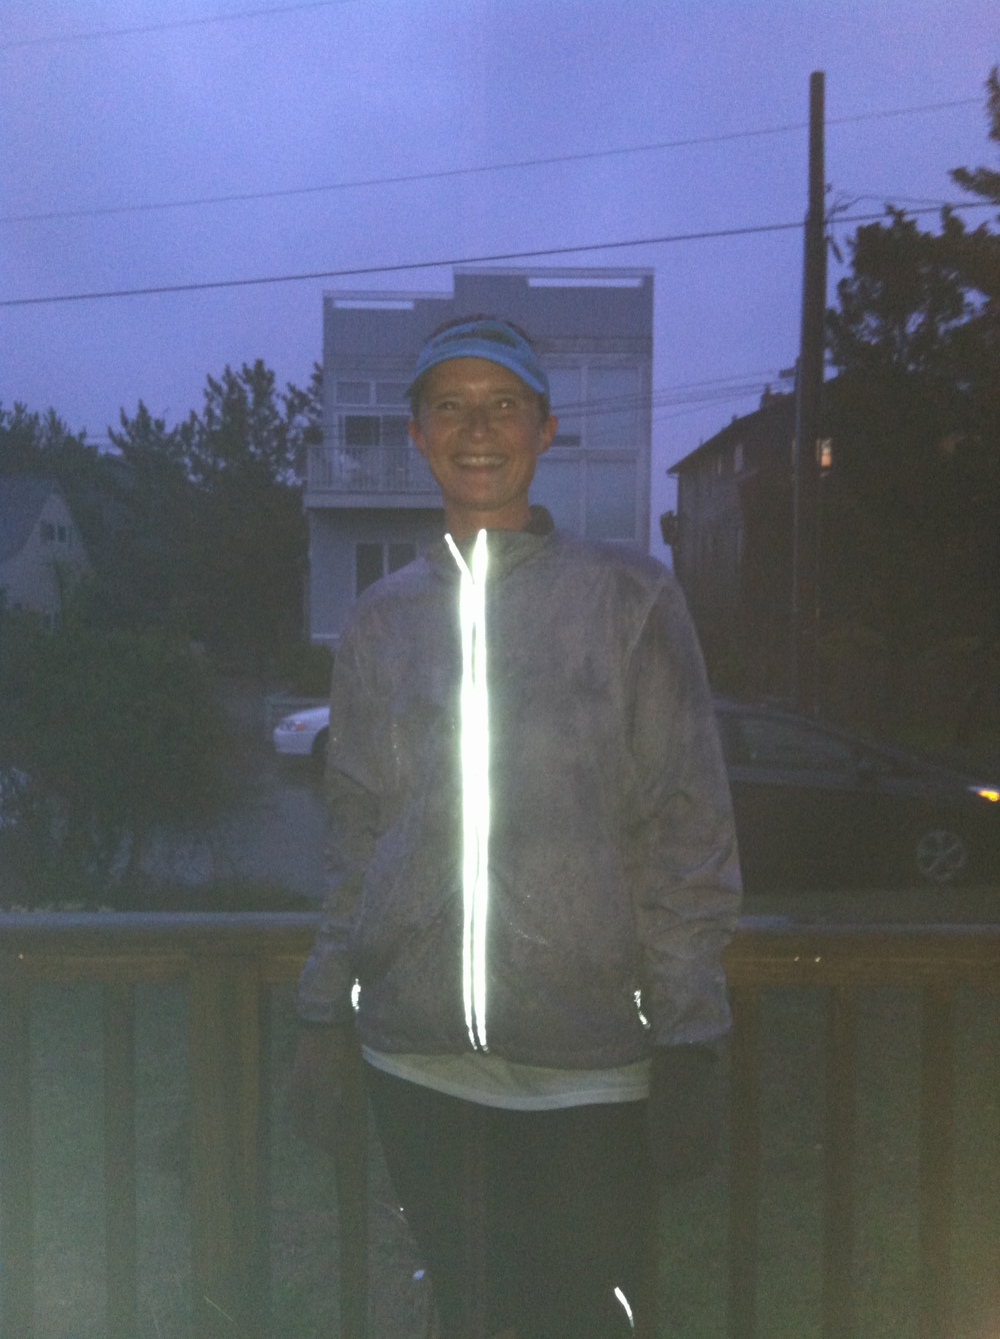 Post-run blissed out. PS can reflective gear just be that shiny always? It's so cool!